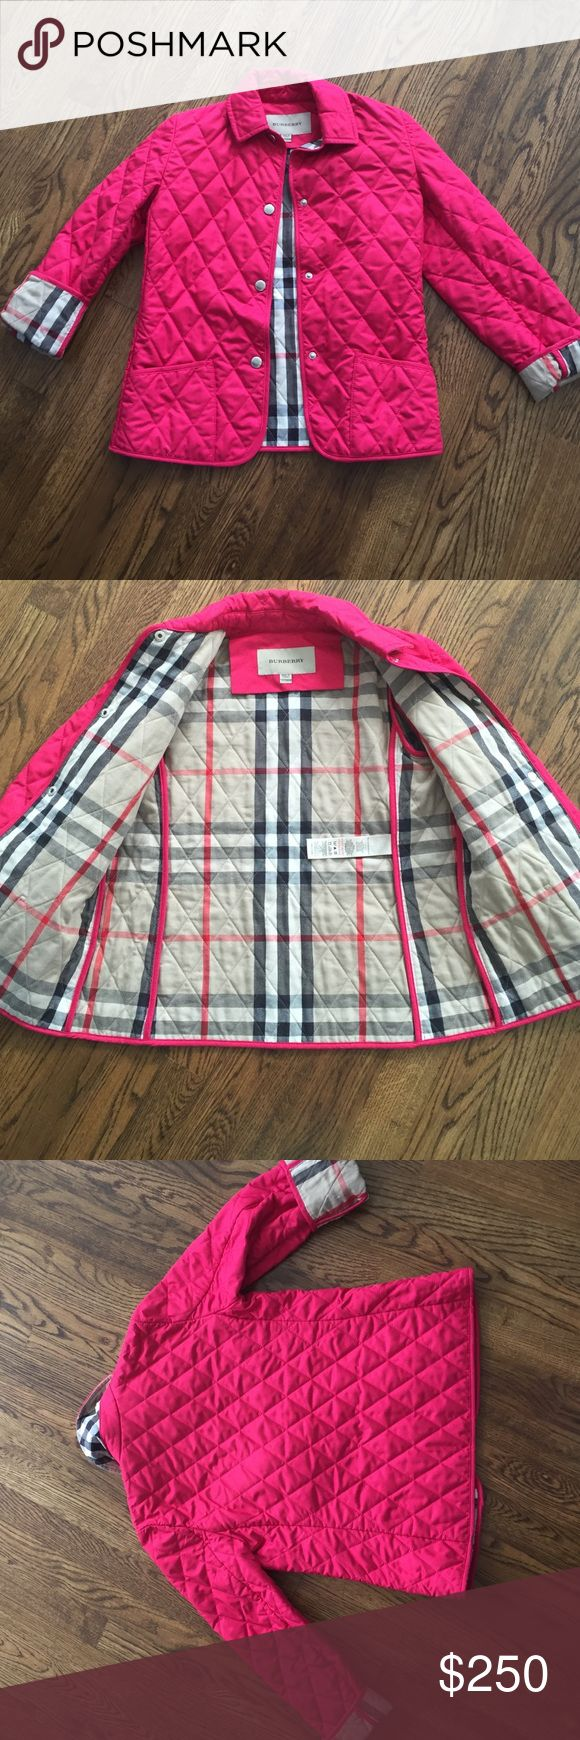 Authentic Burberry Quilted Jacket Authentic Burberry Quilted Jacket, lined with Burberry Print. Sleeves that Roll up to display Burberry Print at Cuff. Like New only worn a few times Burberry Jackets & Coats